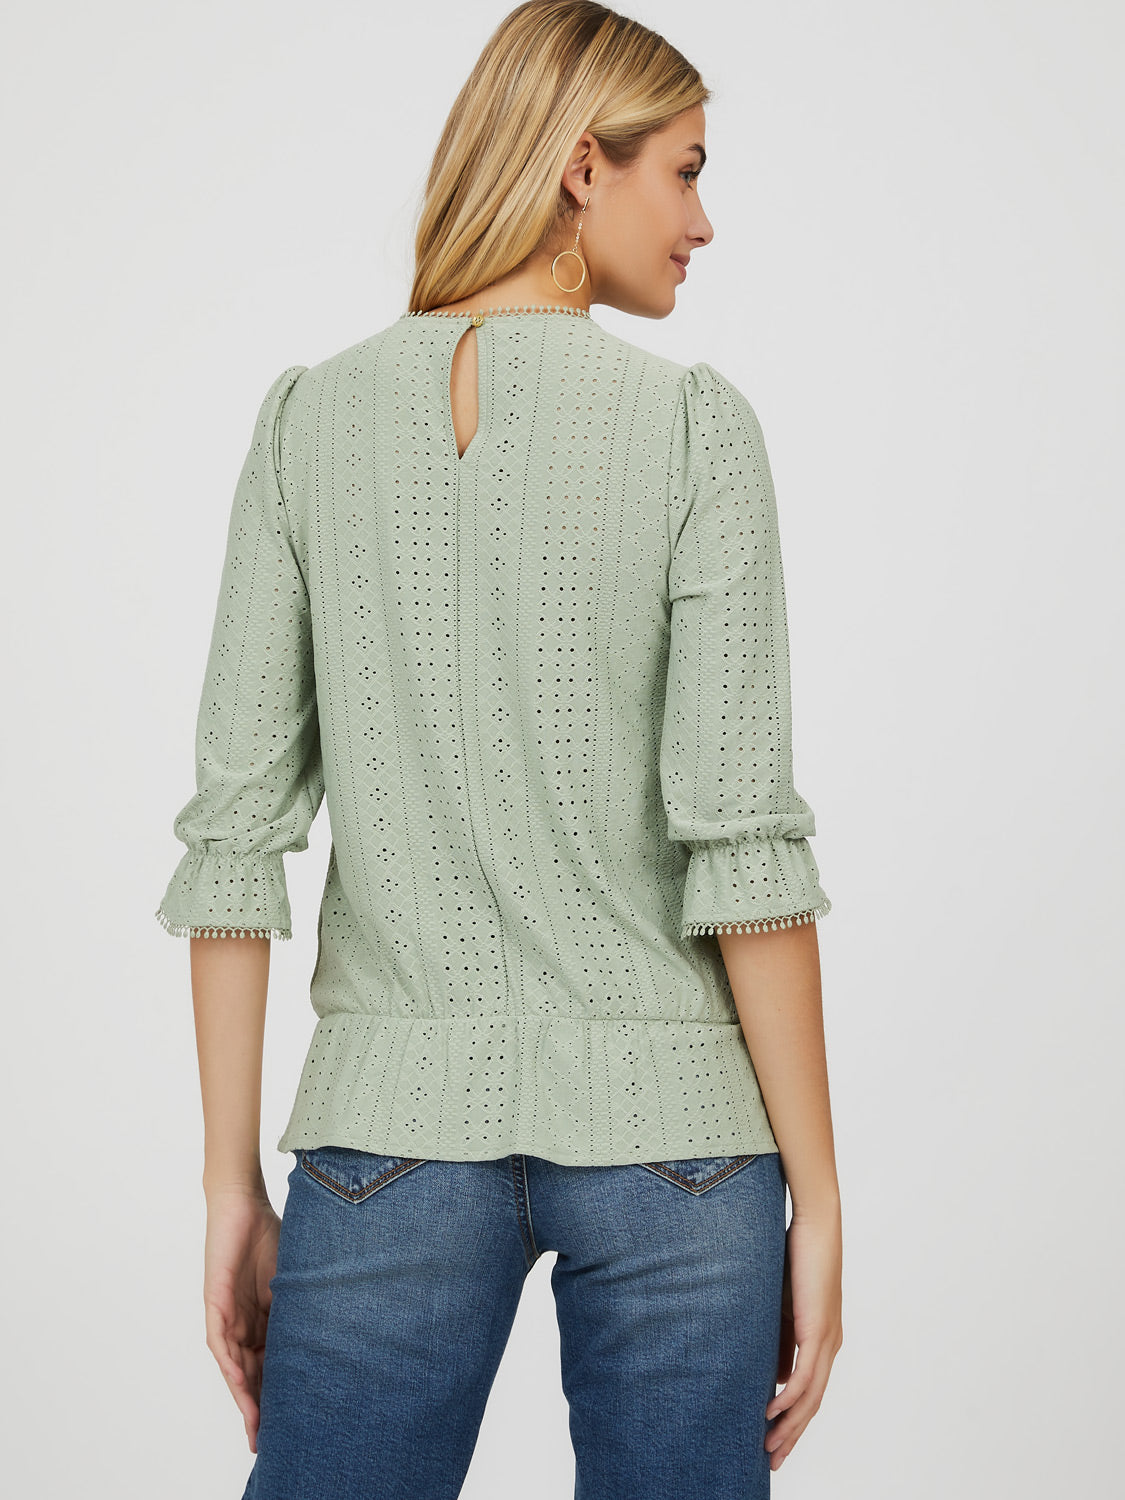 ¾ Sleeve Eyelet & Crochet Crew Neck Top